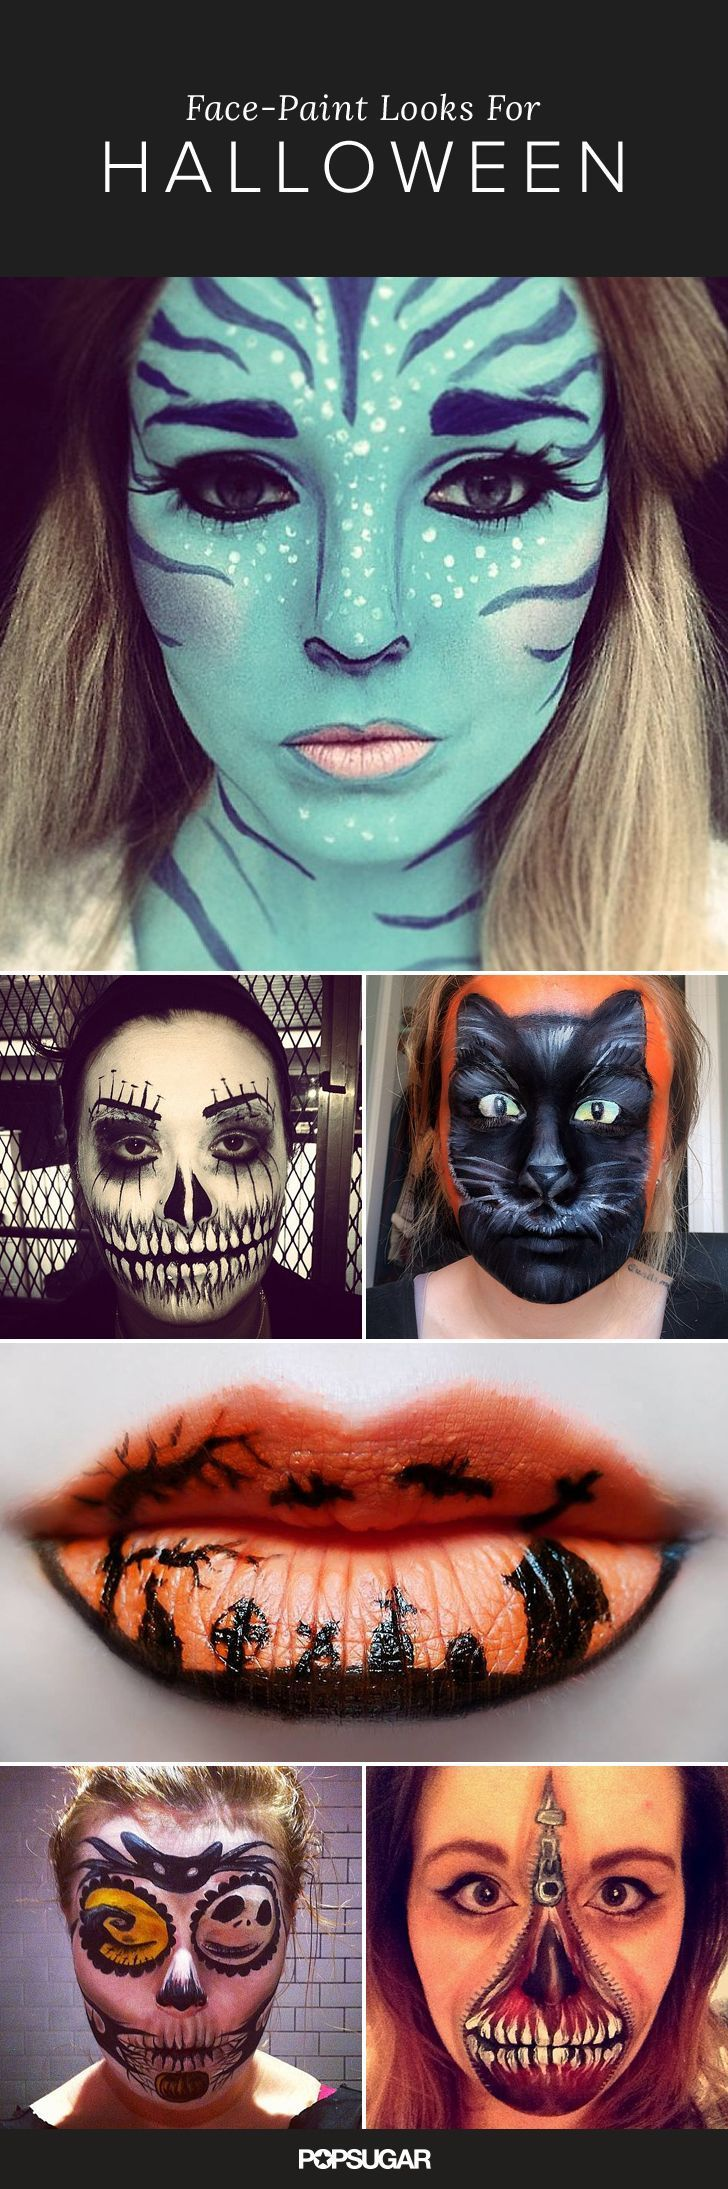 13 Terrifyingly Cool FacePaint Looks to Steal the Show on